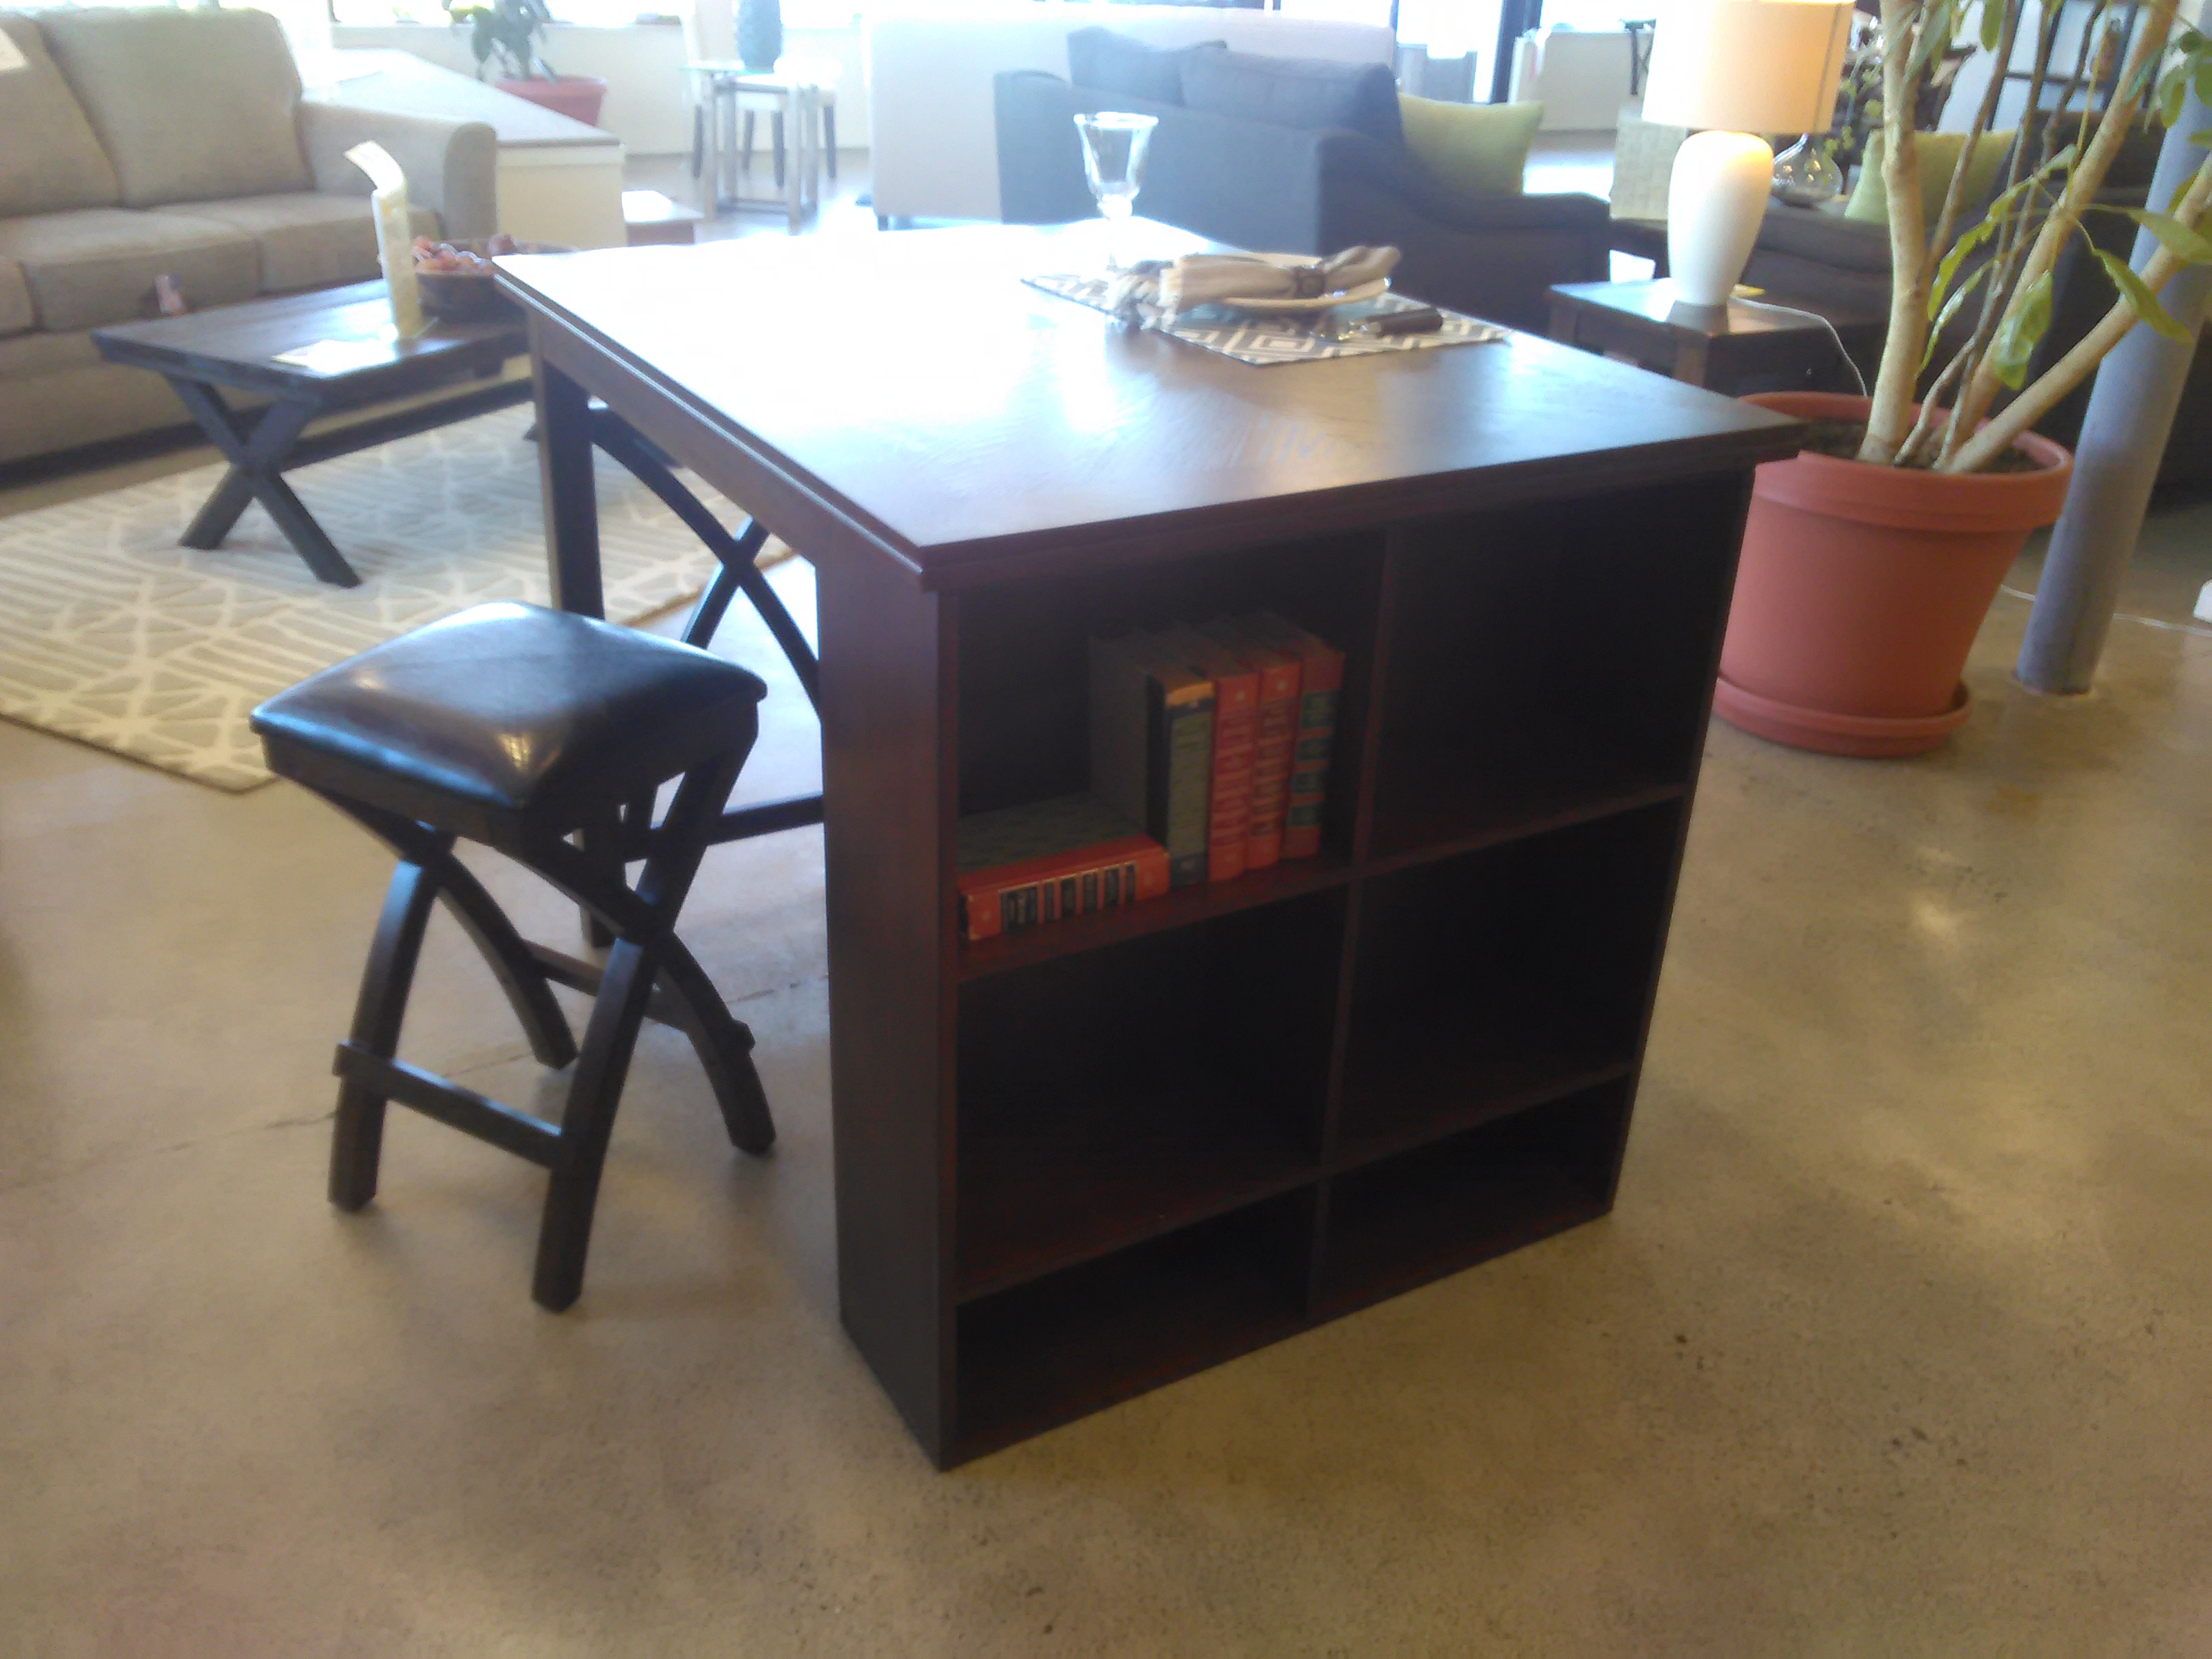 Furniture today concord quality furniture at discount for Furniture today